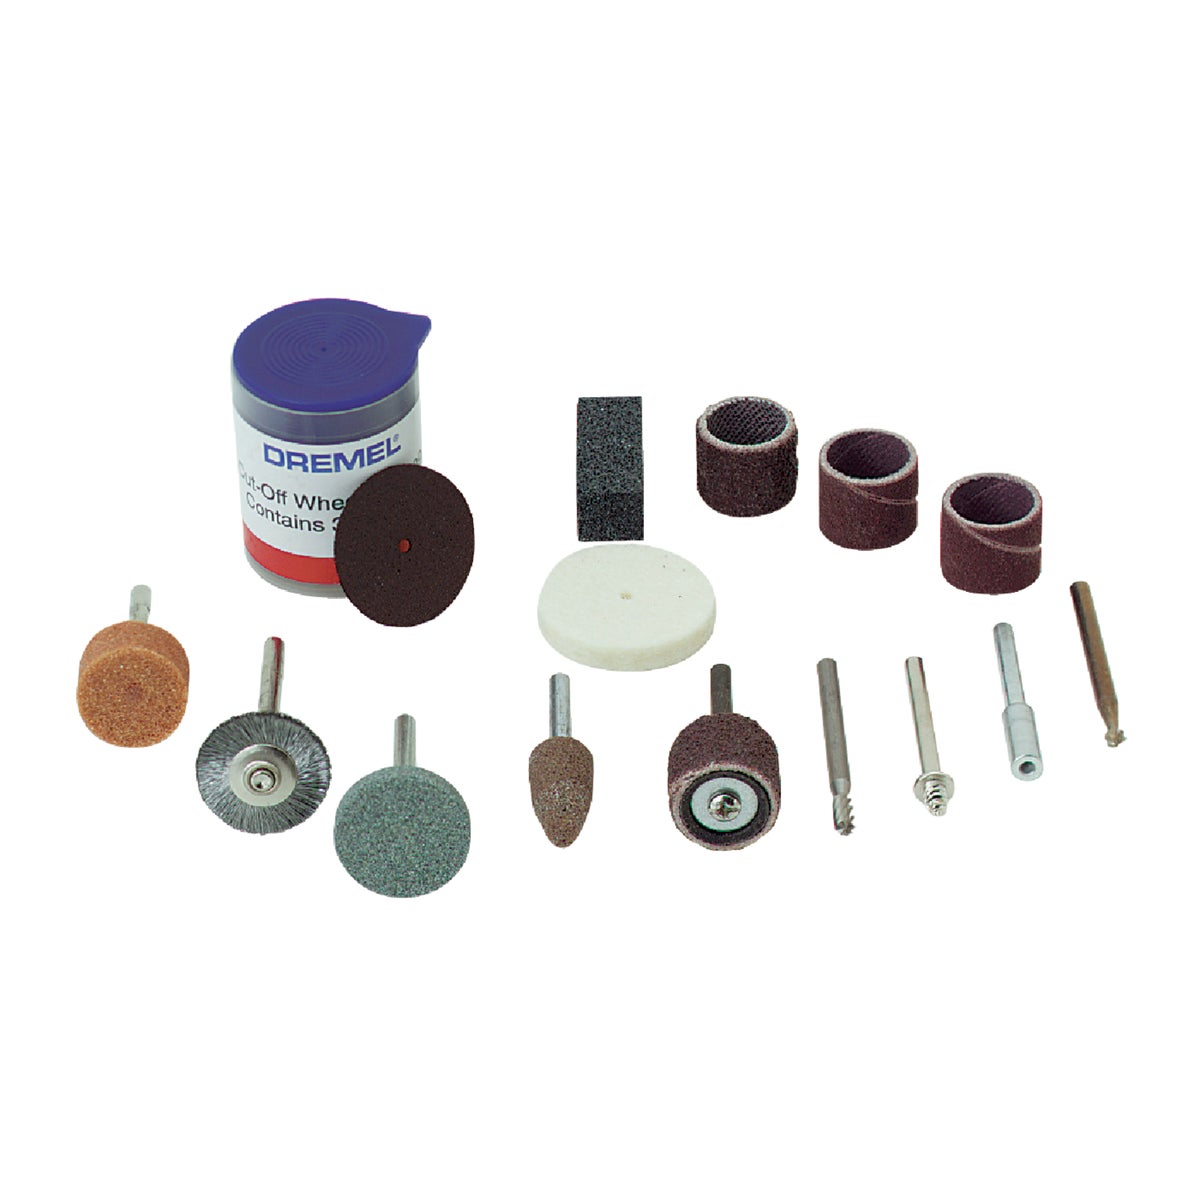 GENERAL PURPOSE BIT SET - 687-01 by Dremel Mfg Co